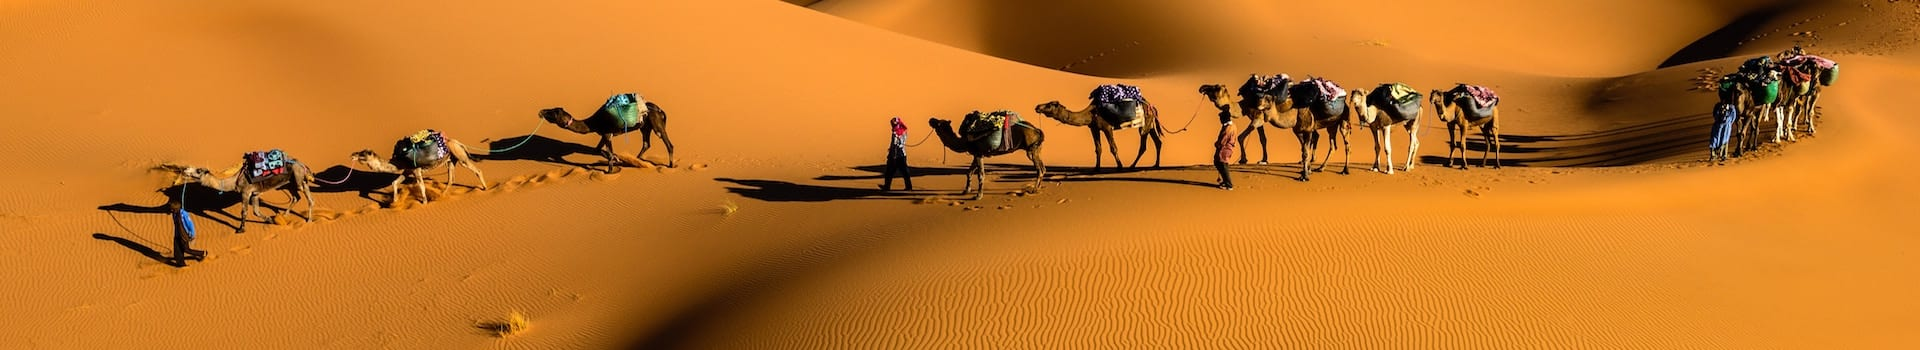 Camels in Morocco, North Africa